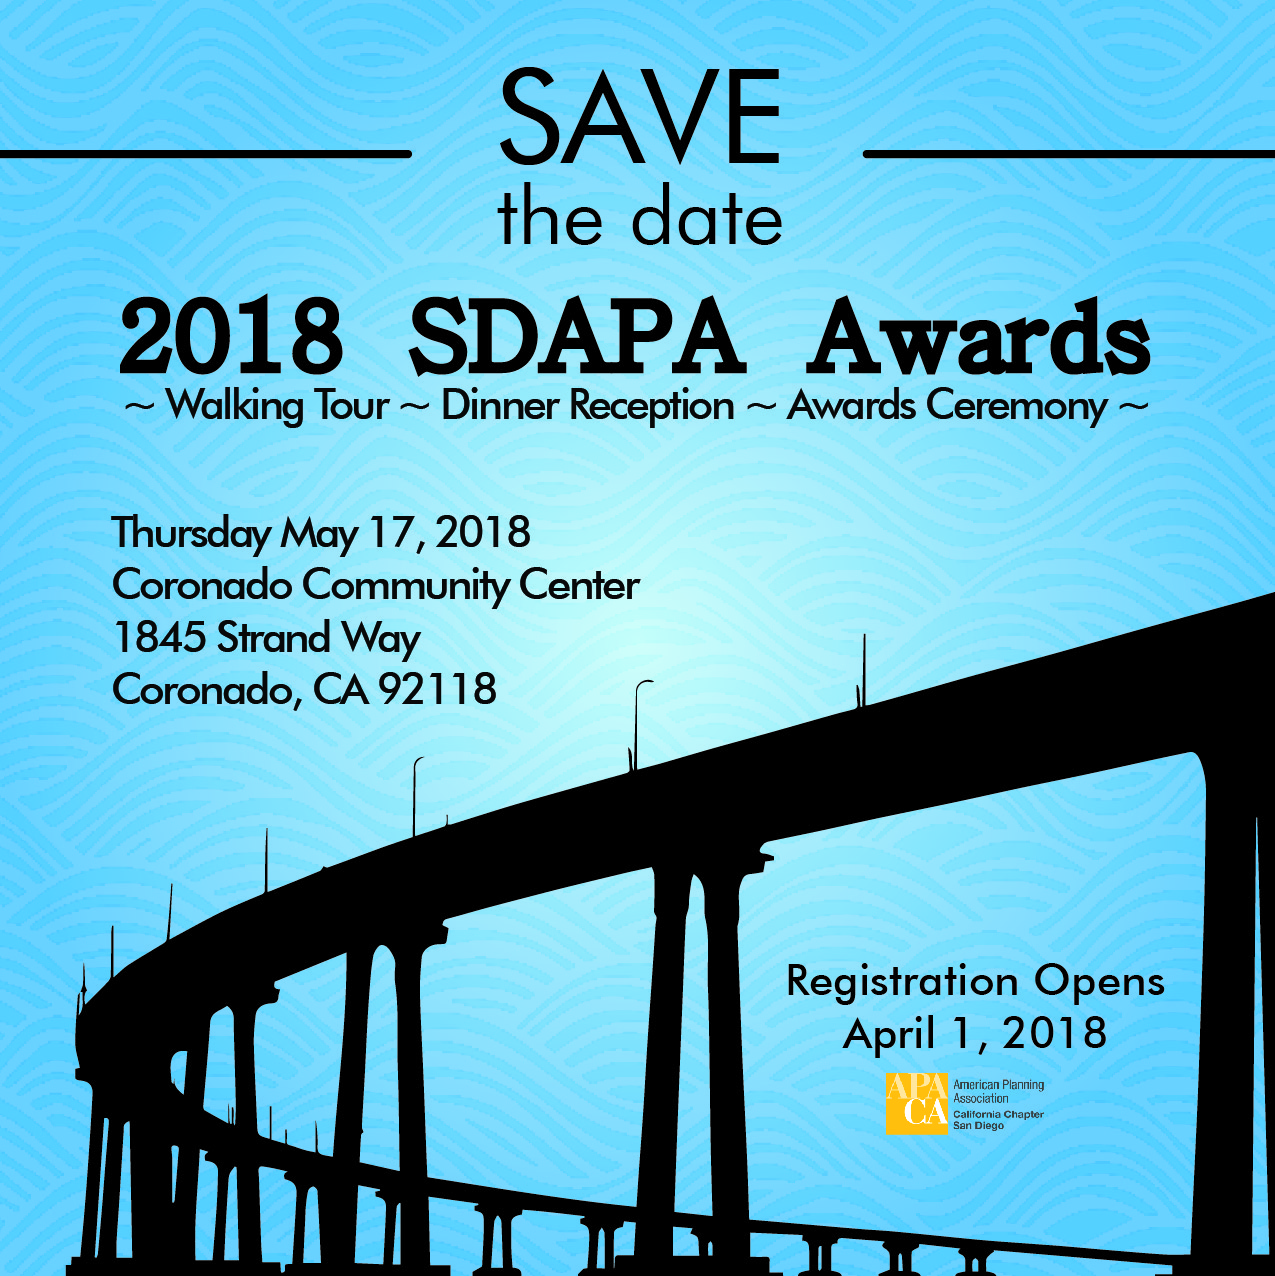 SDAPA Awards - Save the Dave